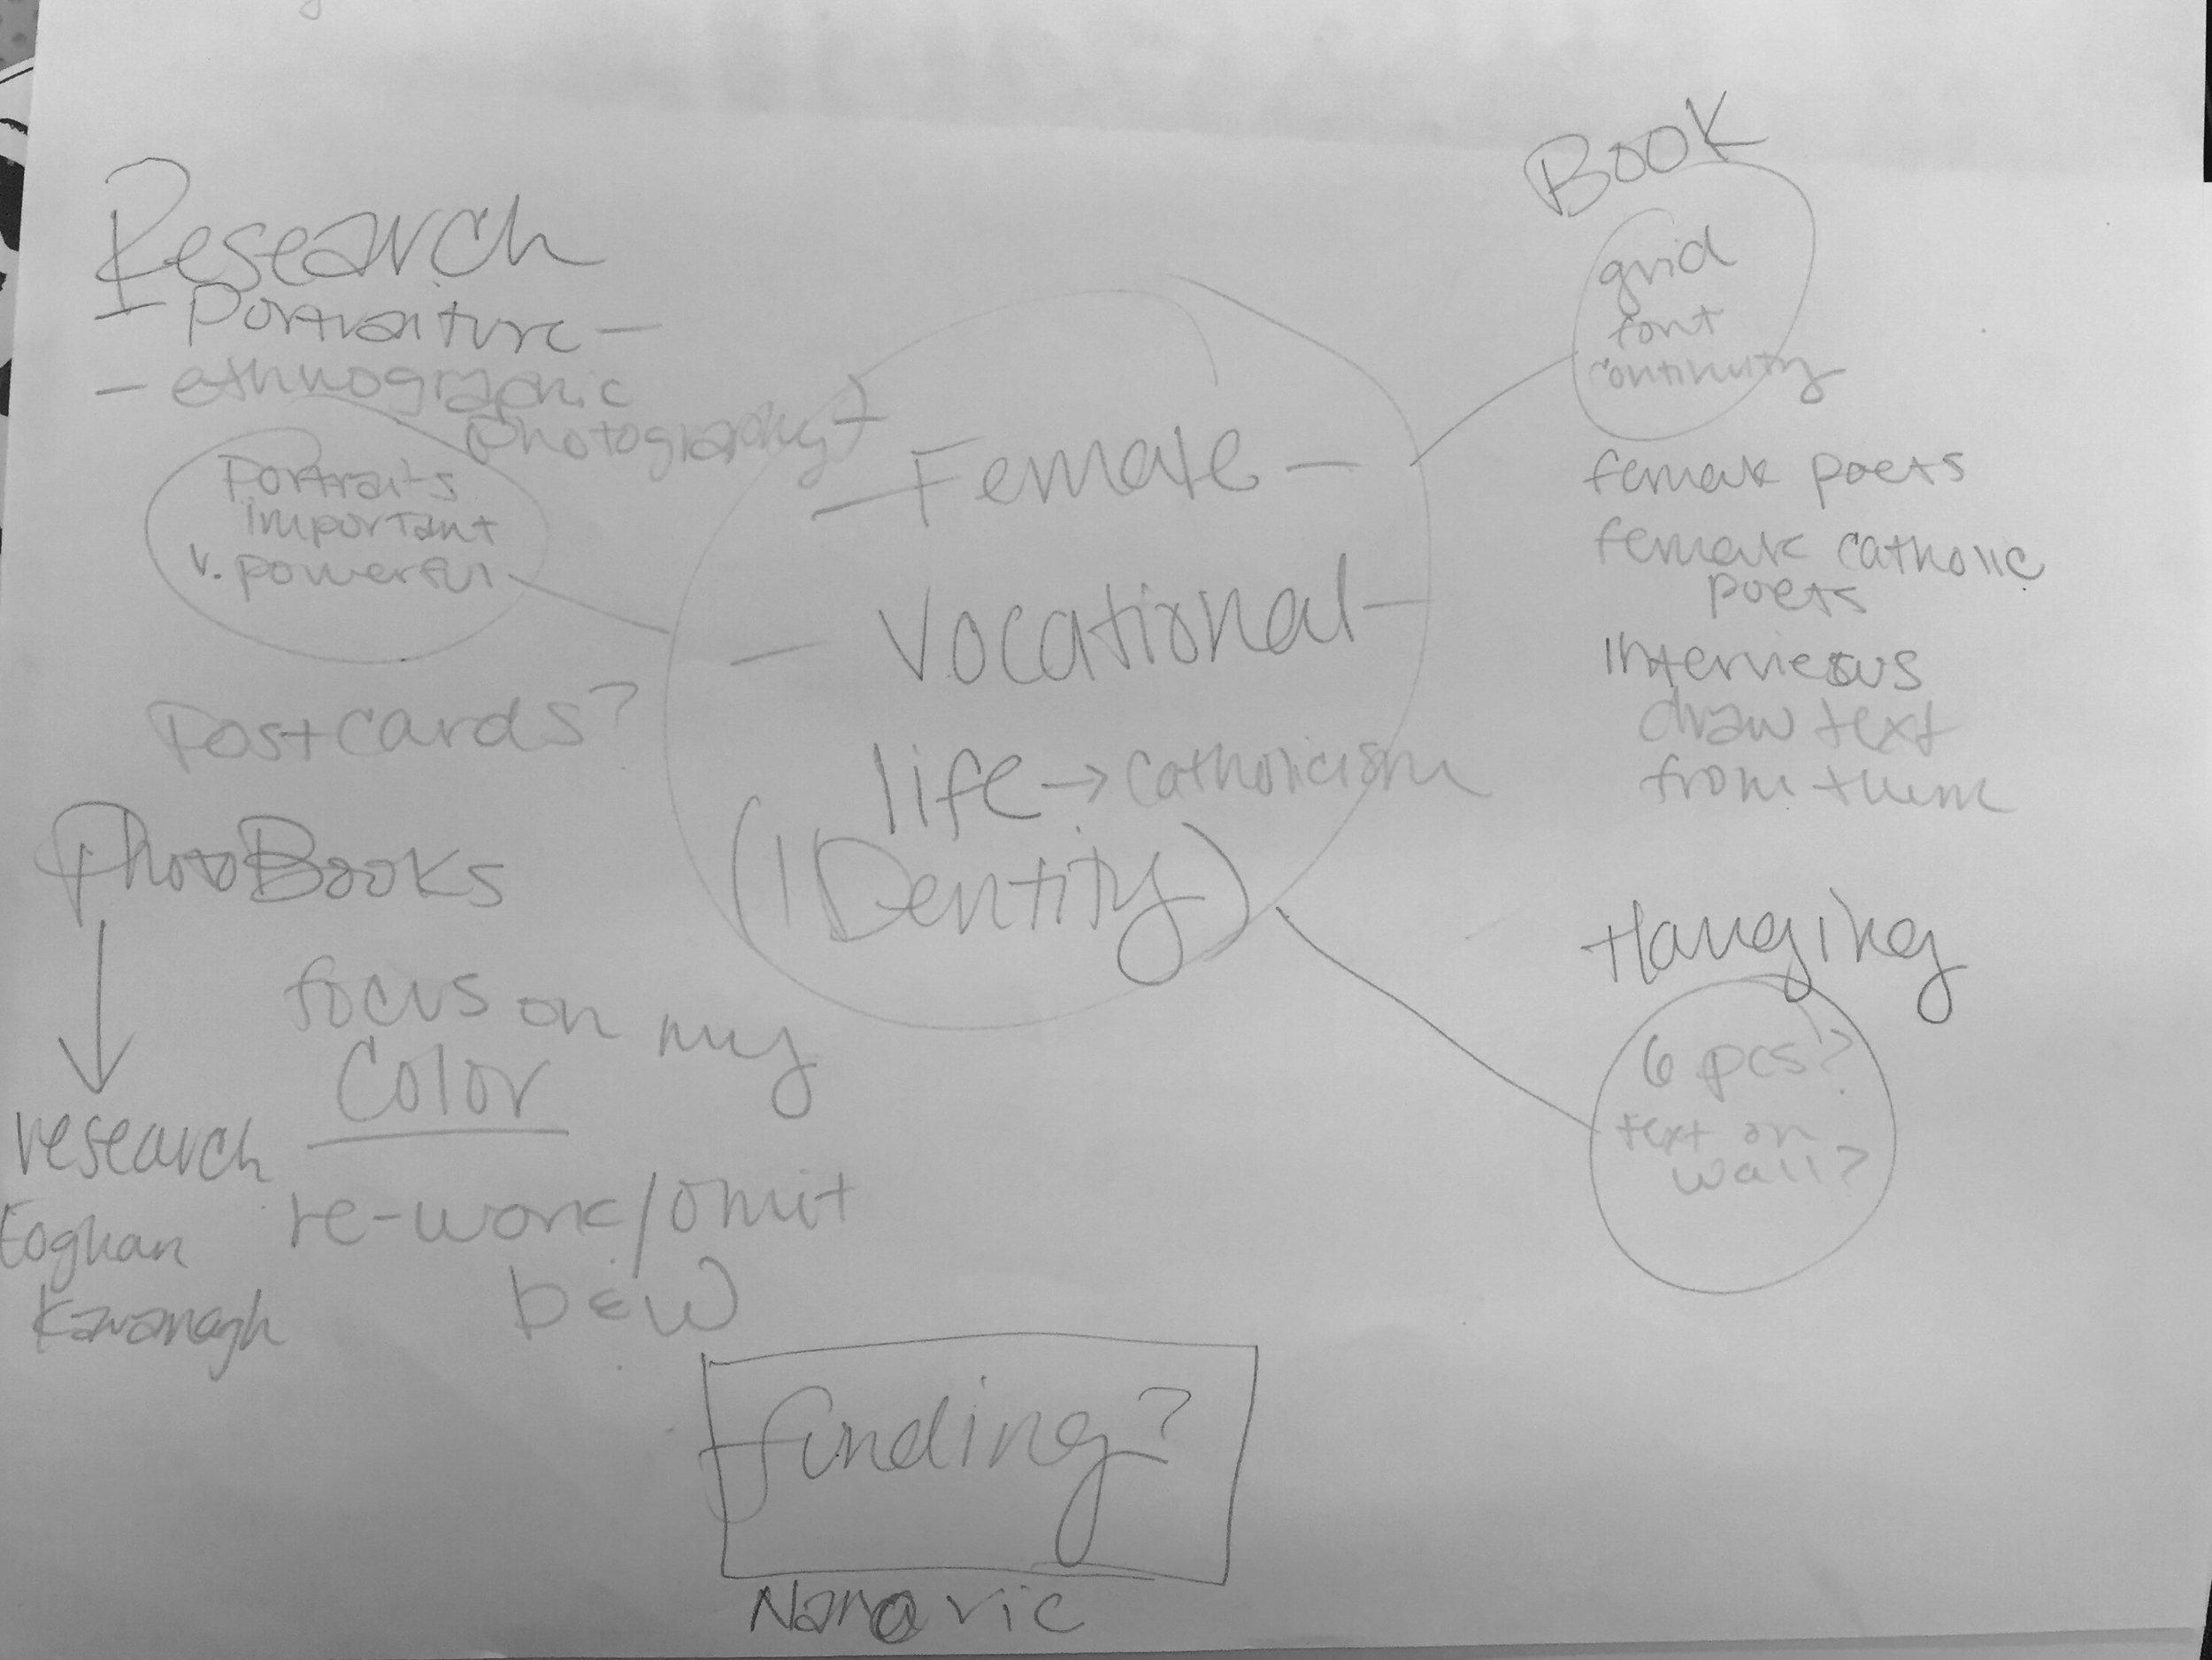 These are some of the ideas thrown out in group discussion during class when I introduced my thesis work. Two core themes that will be at the center of my thesis are the role of the Female in Catholic religious life and the idea of living a vocational and where vocations can be seen in similar lights, particularly in the light of an artist's vocation and the light of a religious vocation.   There were a few discussion points I found to be helpful in considering not only the content of my thesis but how I will display and present it: creating a consistent grid and font and having other design continuities in the book form of my Thesis, focus on the text and how it will not only act on its own but compliment the photographs as well as how they will be grouped together, do more research into portraiture photography and ethnographic photography and how these two genres can work cohesively, look at more literature especially female poets, female catholic writers, and writers that focus on artist and religious vocation.   The first order of business that I will go forward with after this discussion will be researching more literature and focusing on the writing component. After that I will research portraiture and ethnographic photography and eventually get to the design elements.